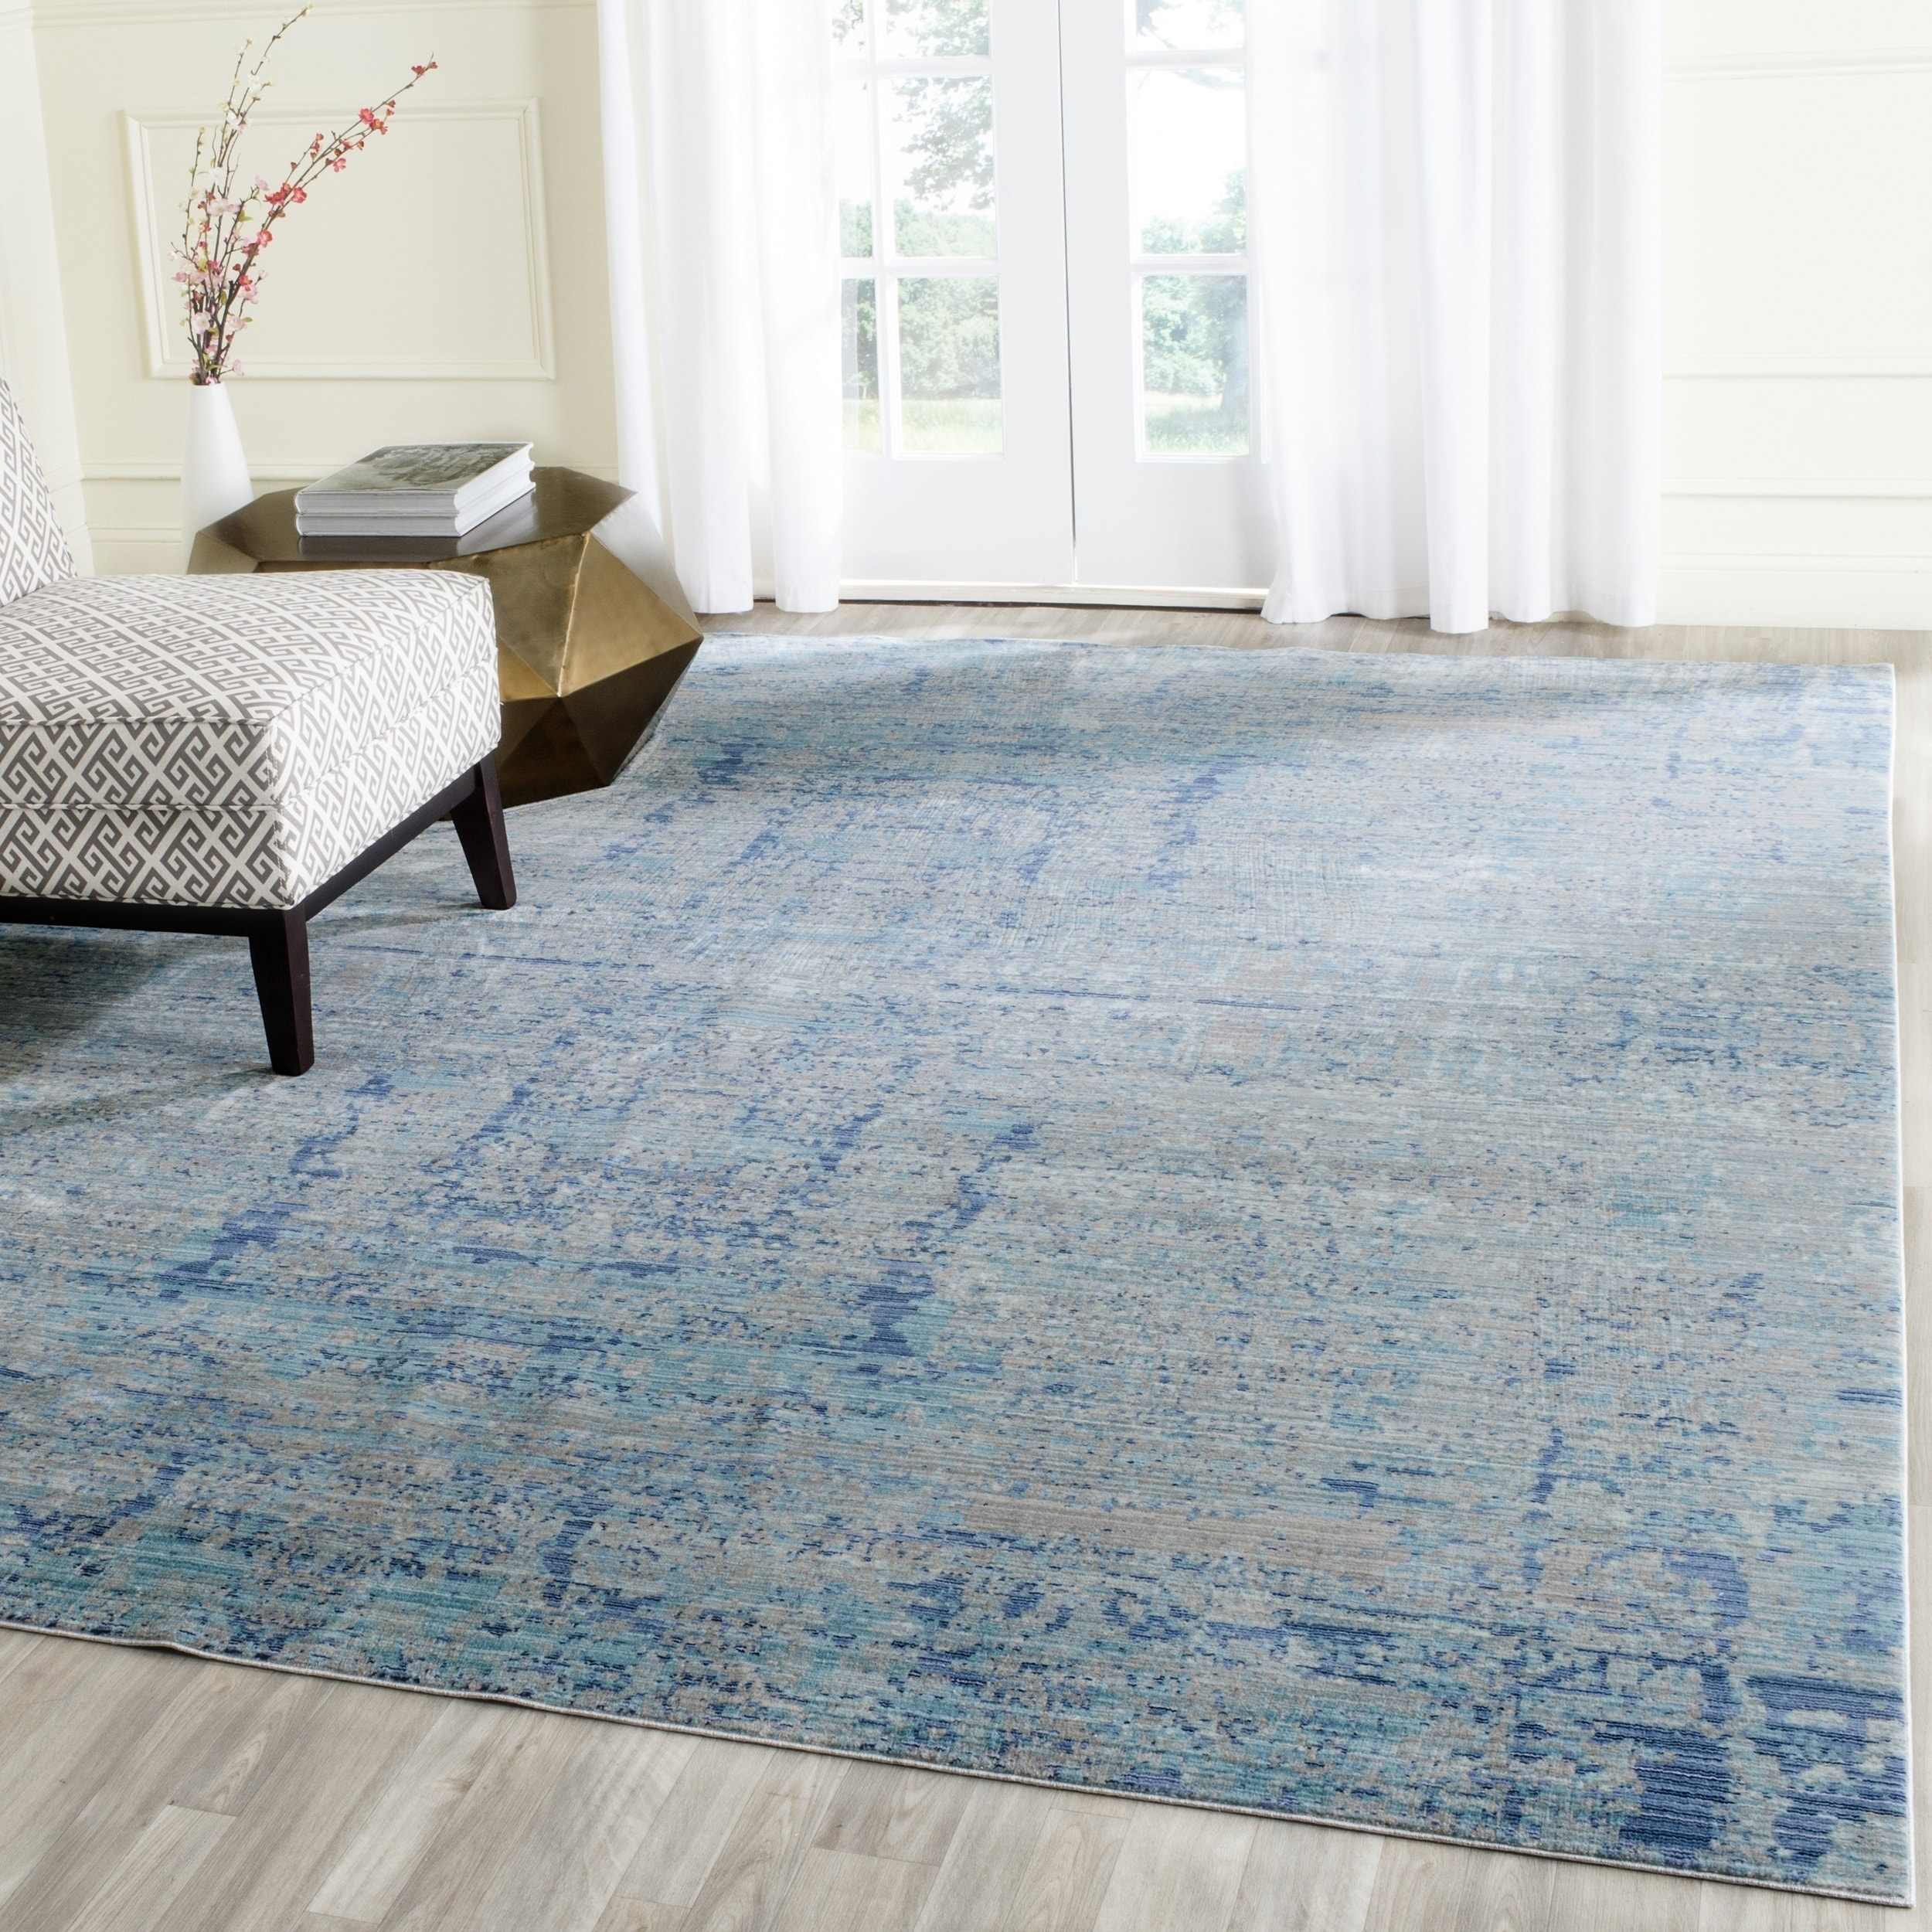 free watercolor light safavieh home distressed abstract blue x grey rug monaco garden today overstock shipping product